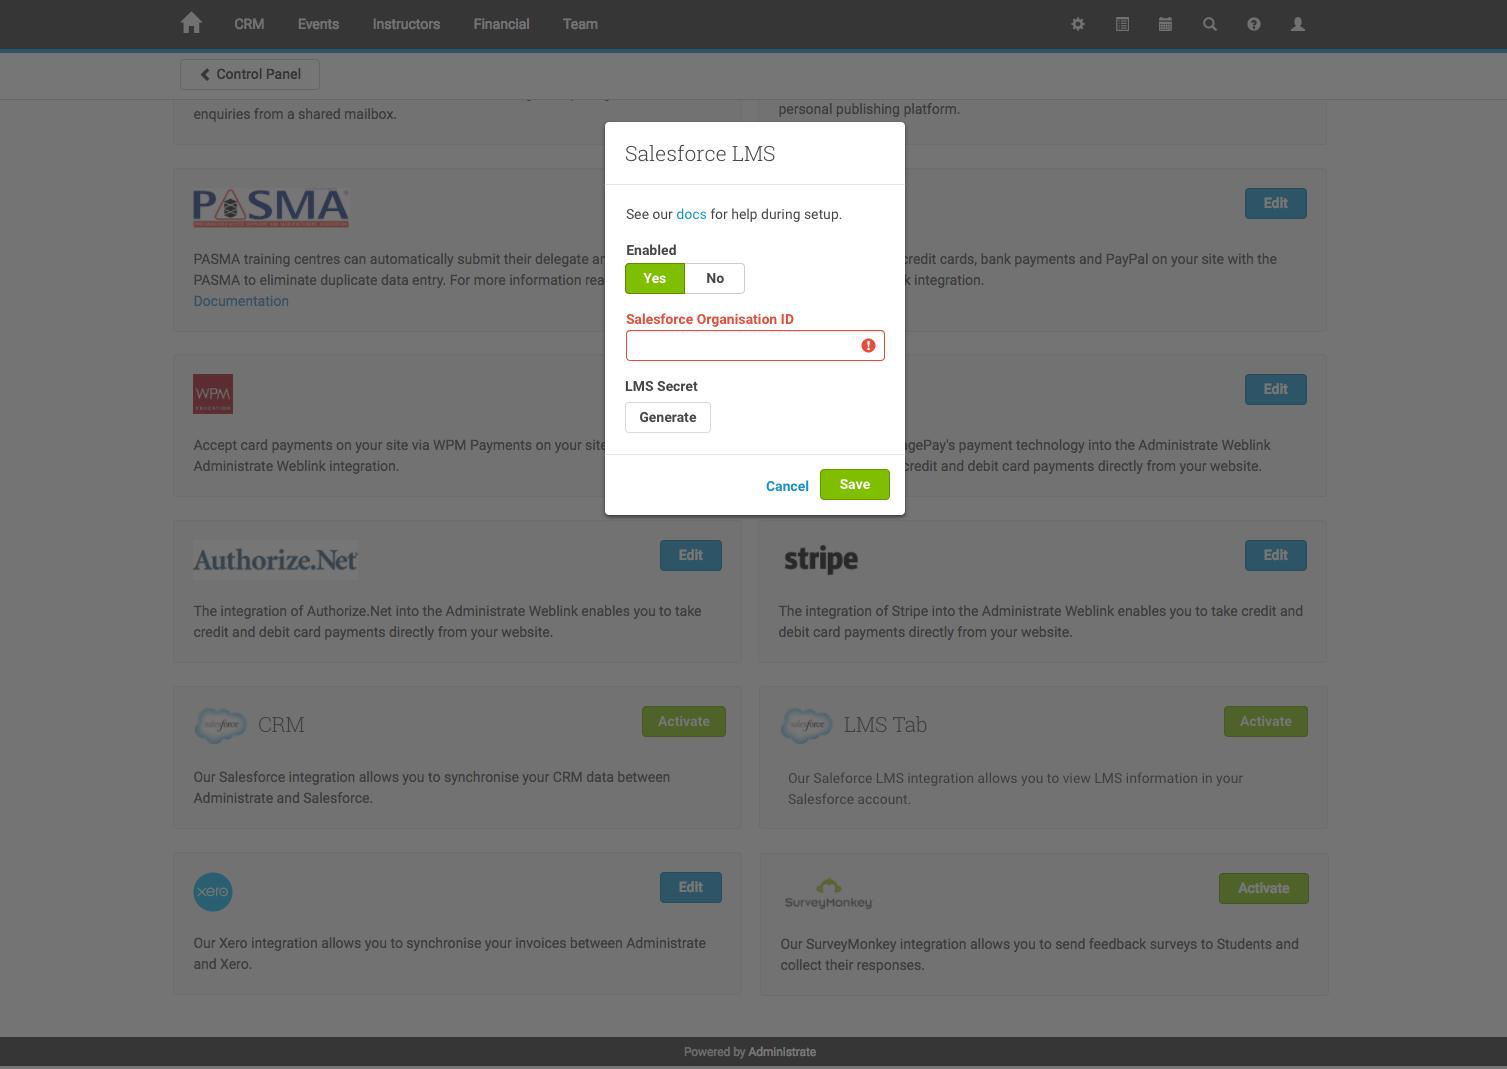 In Administrate, enter your Salesforce Organisation ID under Settings > Integrations > Salesforce LMS Integration, and copy the generated key